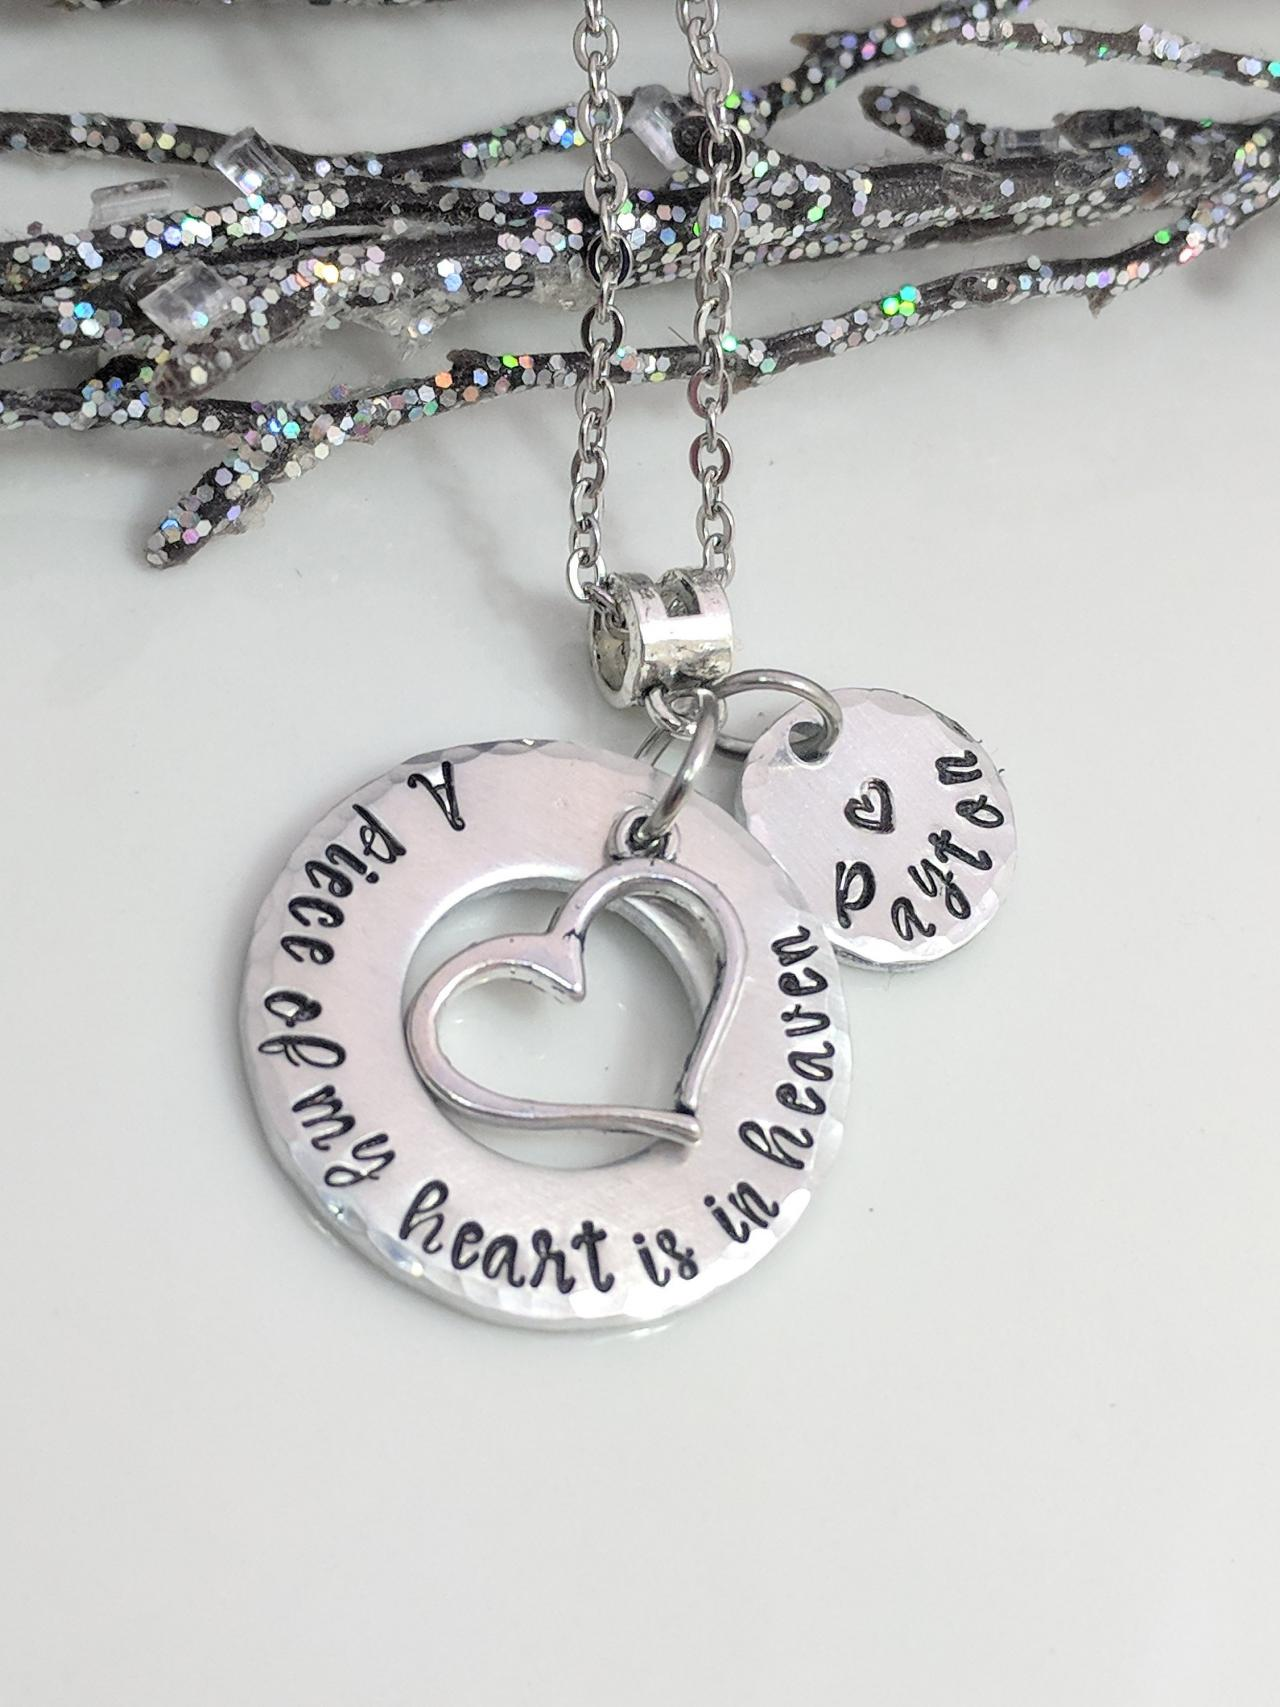 Loss Jewelry- A Piece Of My Heart- Pregnancy Loss- Remembrance Jewelry- Customized Memorial Necklace- Heart Jewelry- Keepsake Necklace- Gift